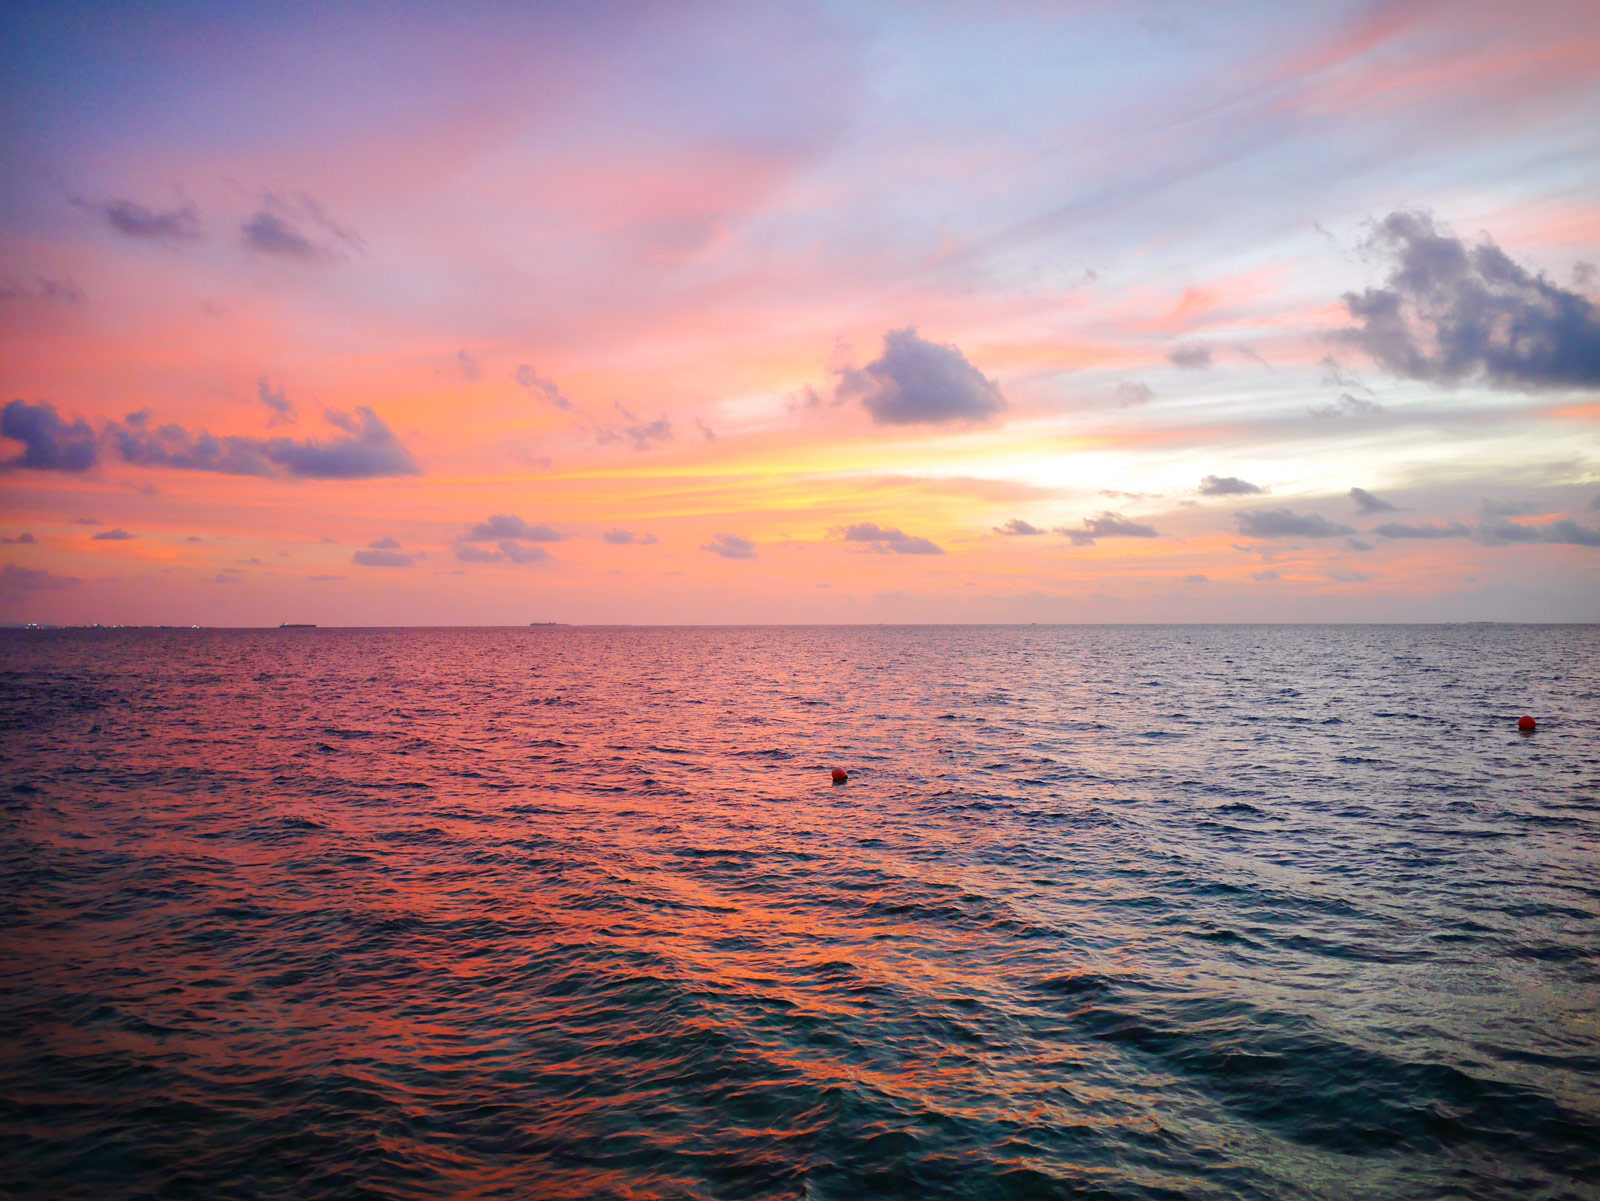 Pink, Purple & Orange Sunsets Paint the Sky - The Maldives, The Maldives